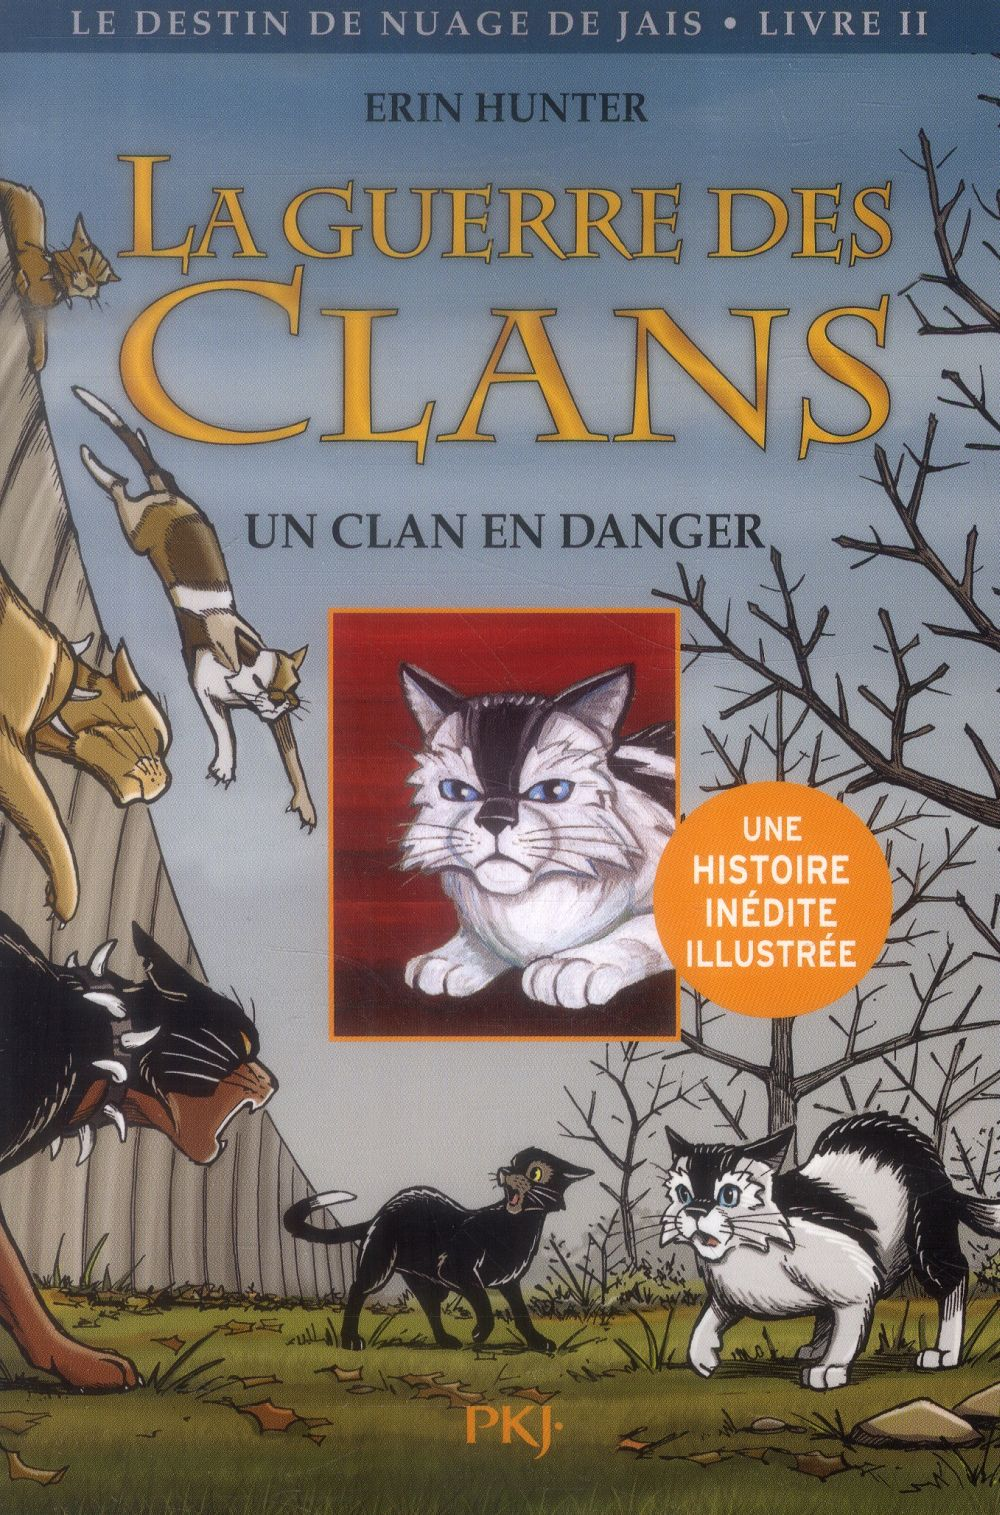 LA GUERRE DES CLANS - LE DESTIN DE NUAGE DE JAIS T.2  -  UN CLAN EN DANGER Barry James L. Pocket jeunesse